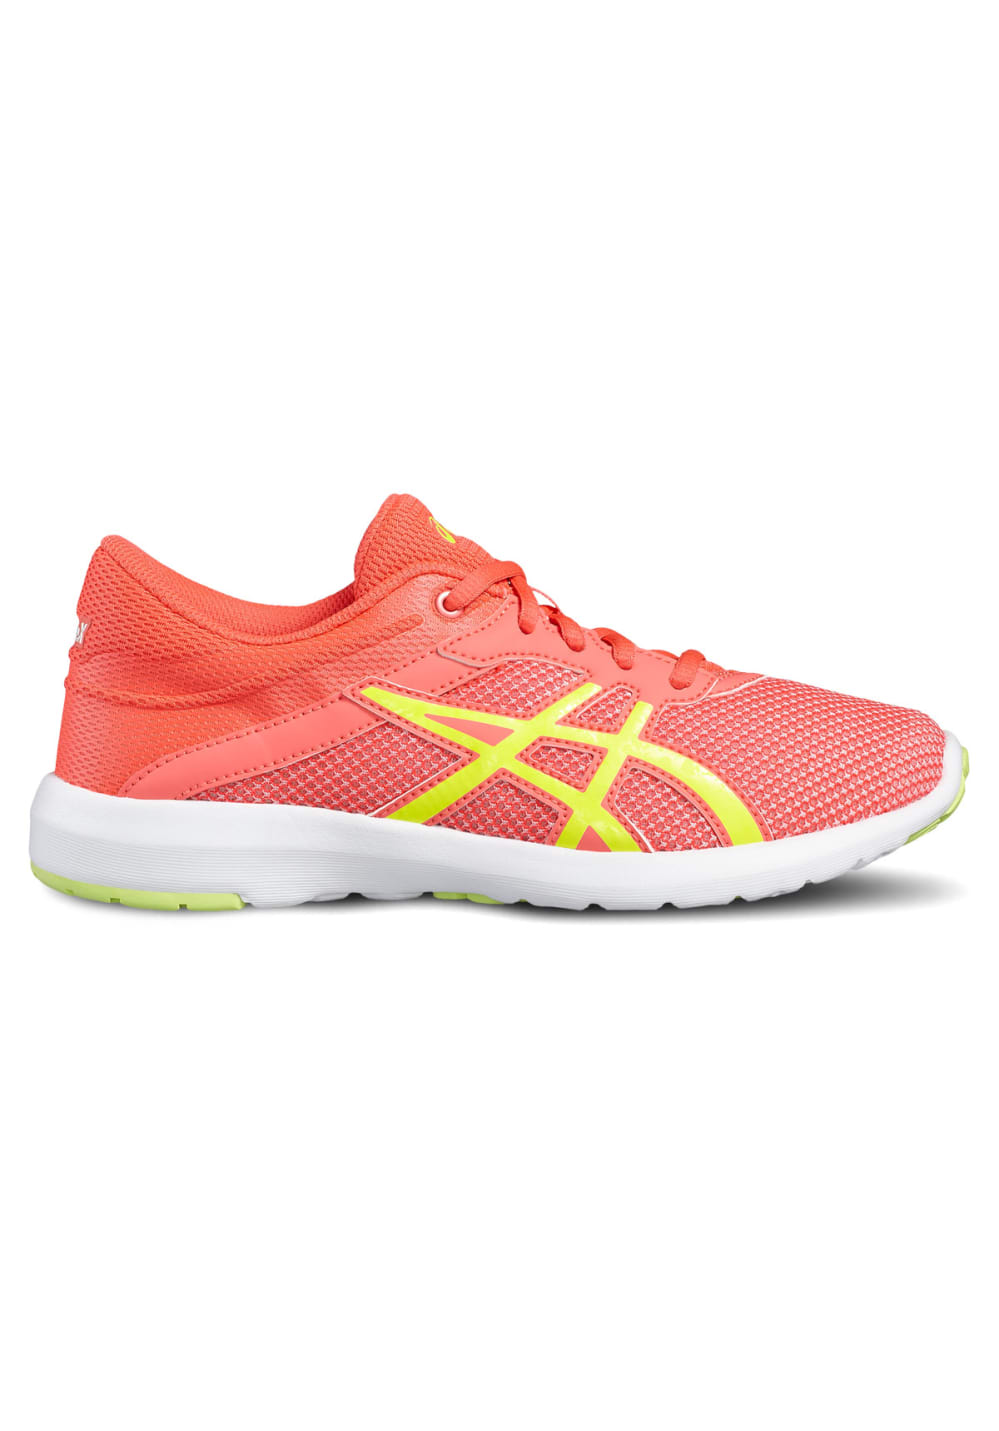 magasin en ligne a67aa efdc5 ASICS fuzeX 2 GS - Running shoes - Red